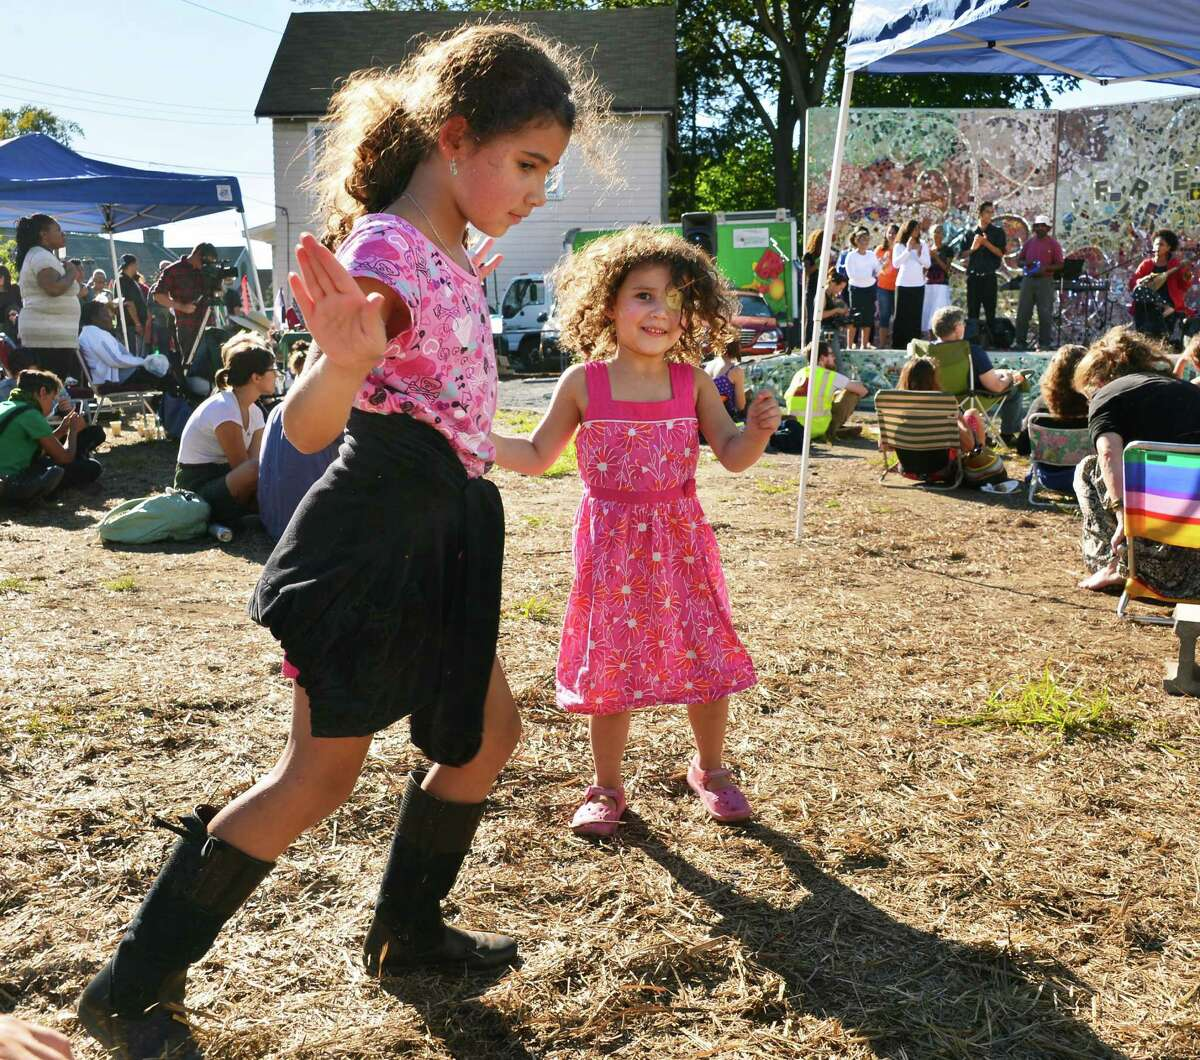 Sisters, Lina,7, left, and Lara Markovitch, 4, of Brunswick dance to the music of Nawal during the Third Annual Celebration of Art and Food from Seed to Table, Story Harvest, at Freedom Square Saturday Sept. 28, 2013, in Troy, NY. (John Carl D'Annibale / Times Union)